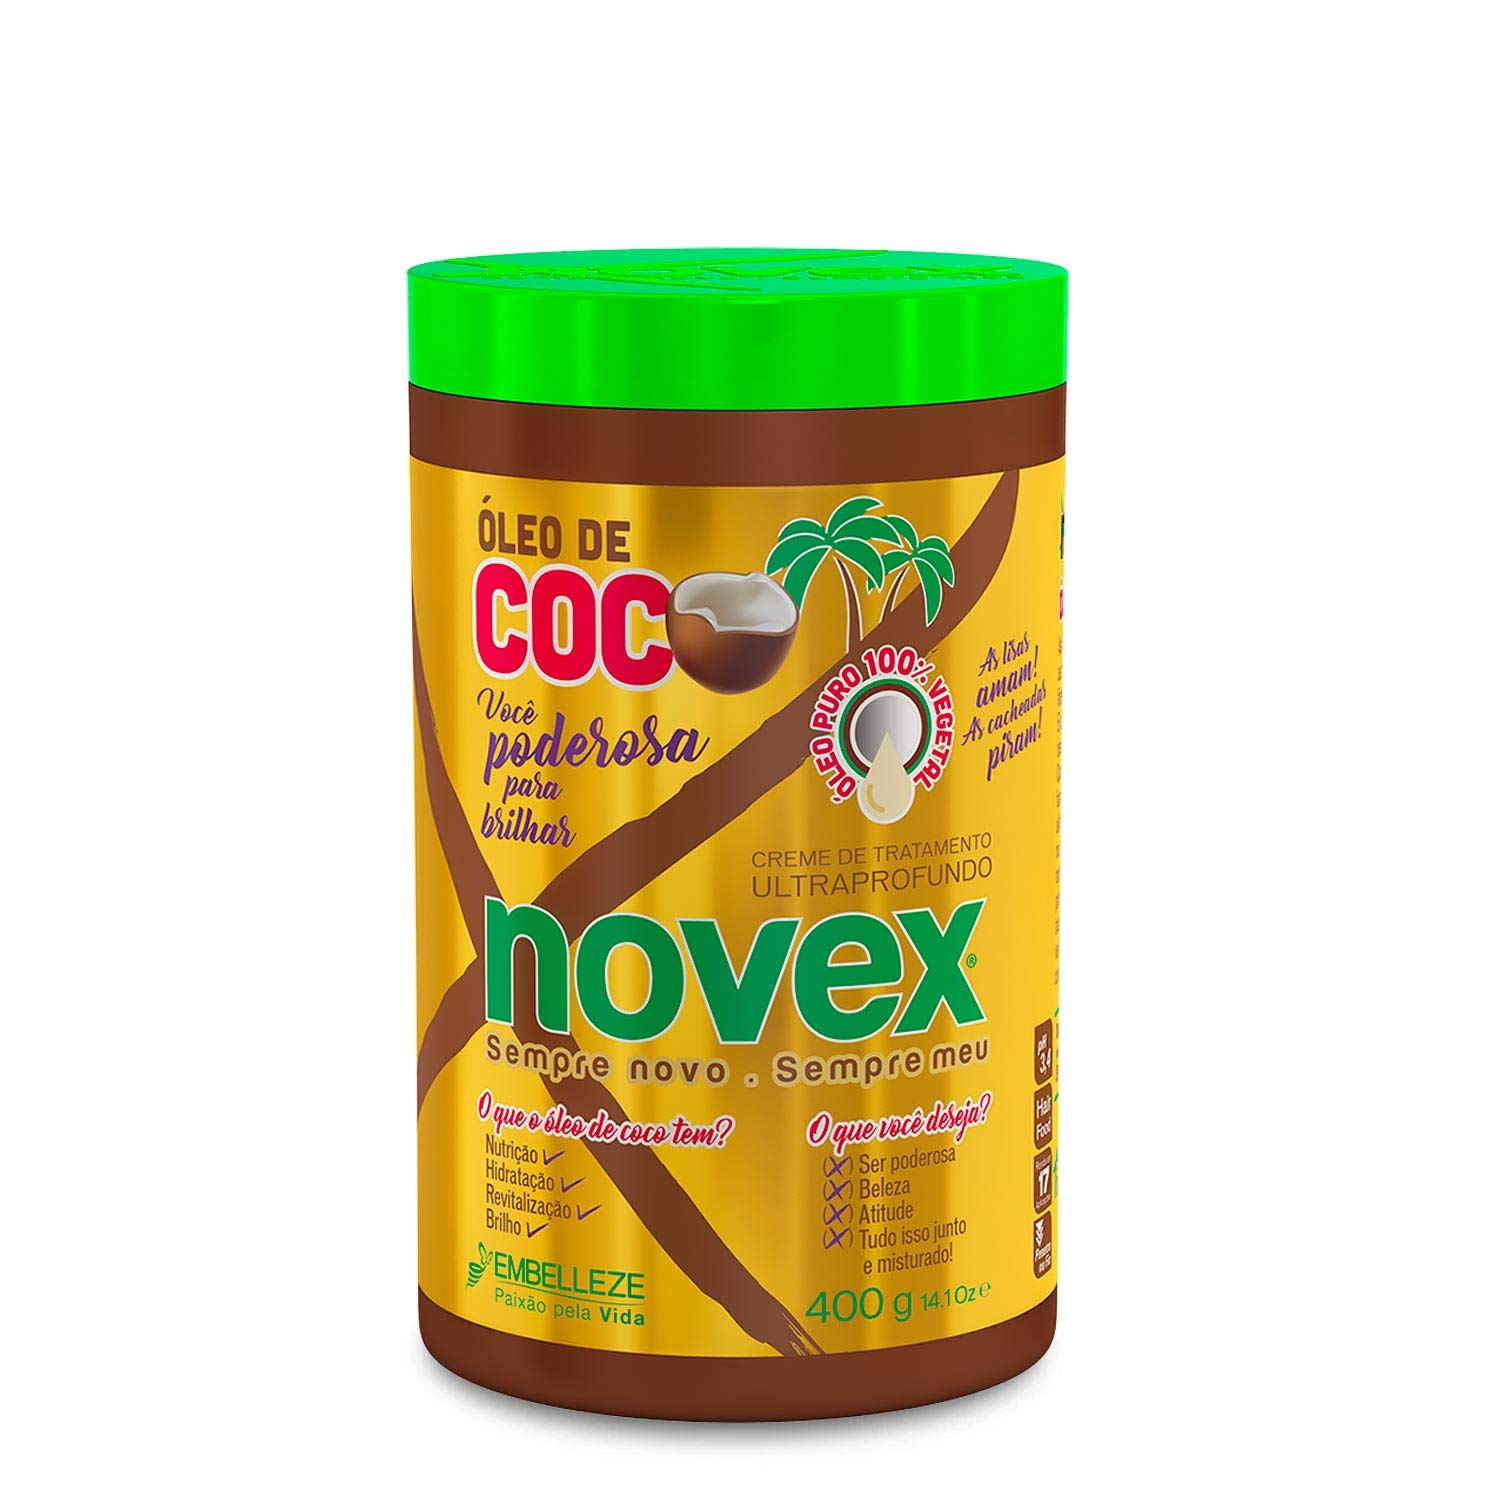 Novex Hair Care Coconut Oil Deep Conditioning Mask, 35 oz (Condition mask)